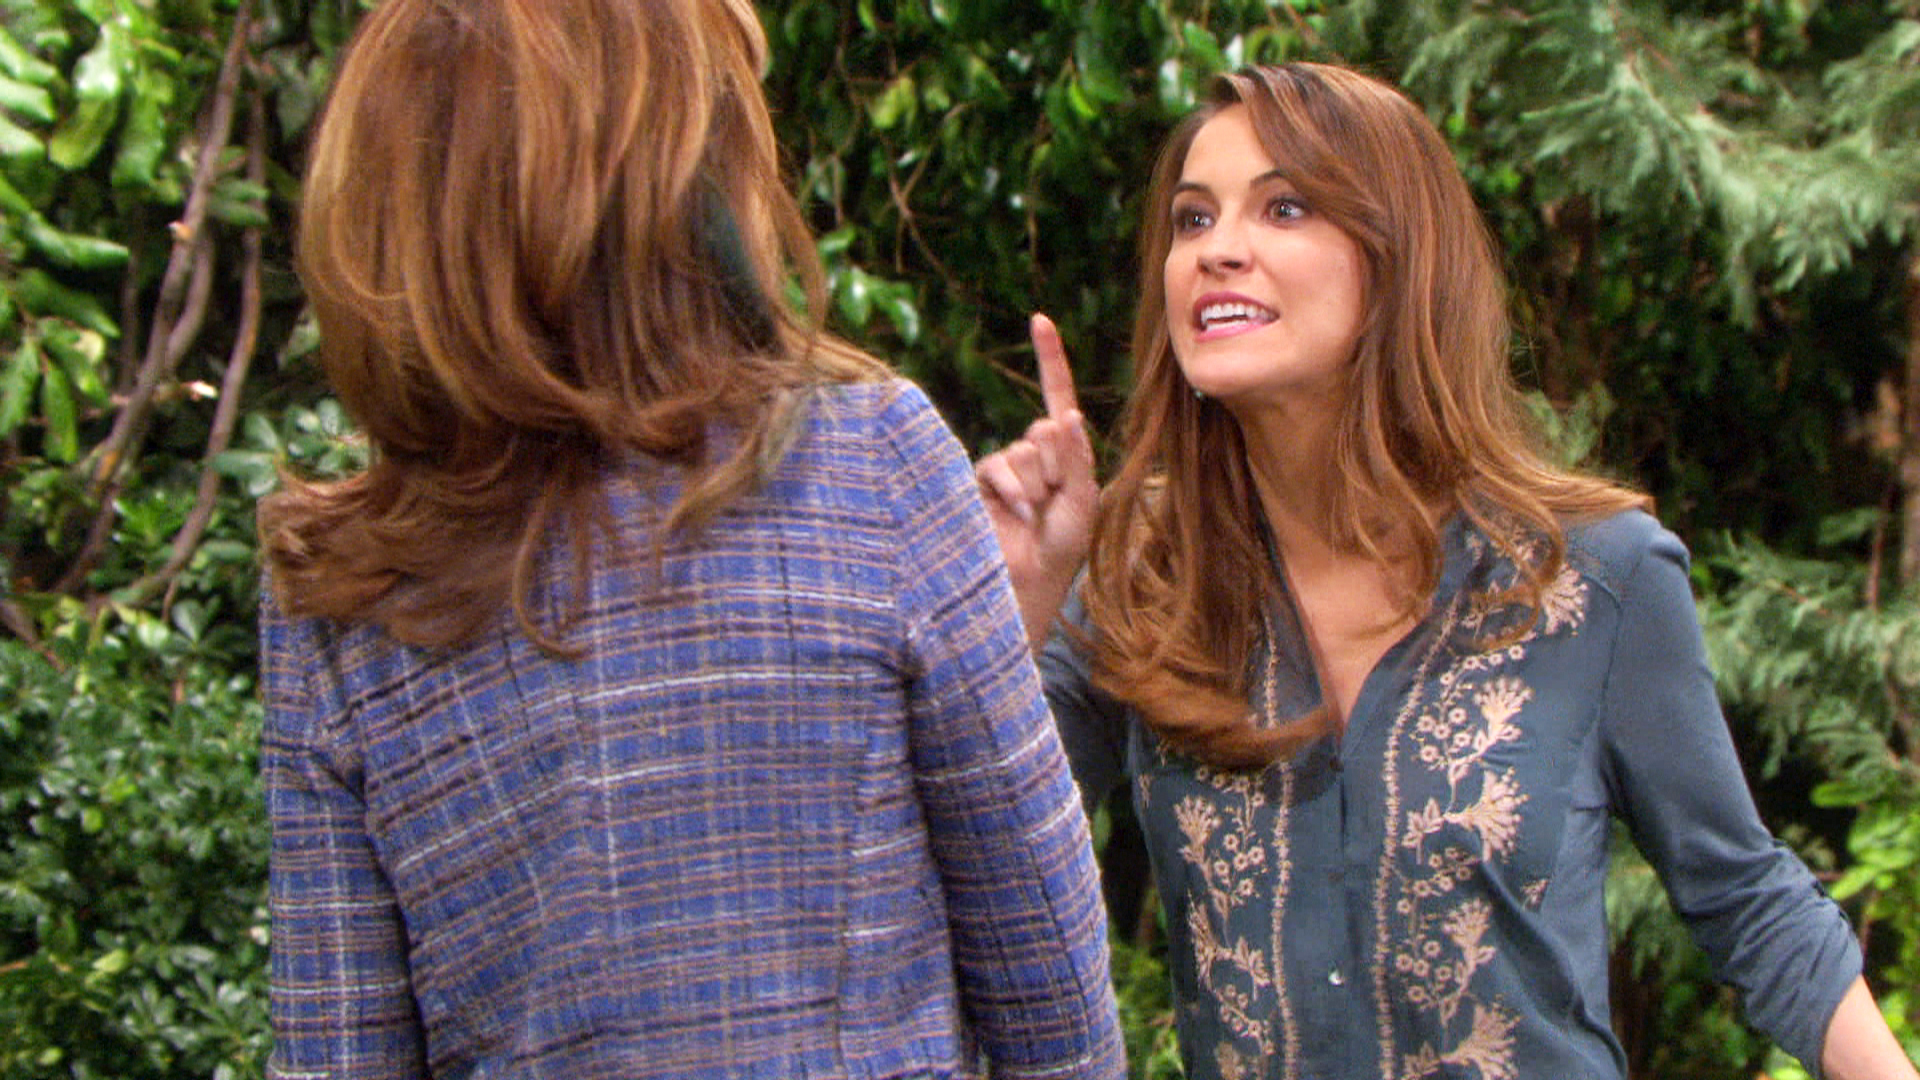 Jordan and Kate get into a huge catfight!